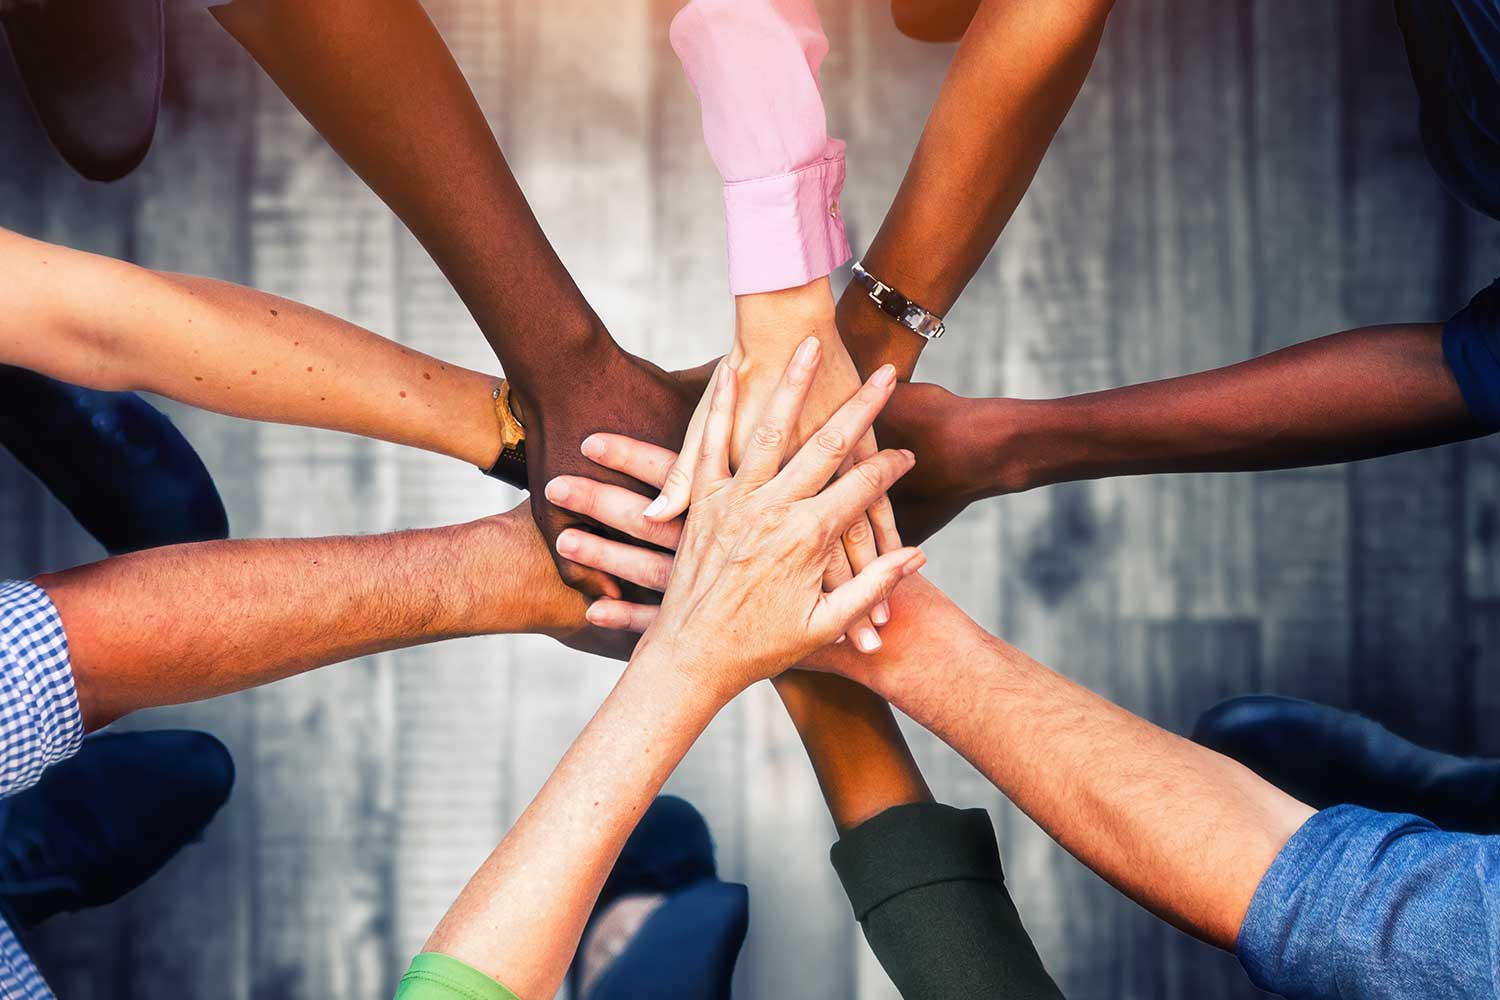 Image representing diversity, equity, inclusion and justice.